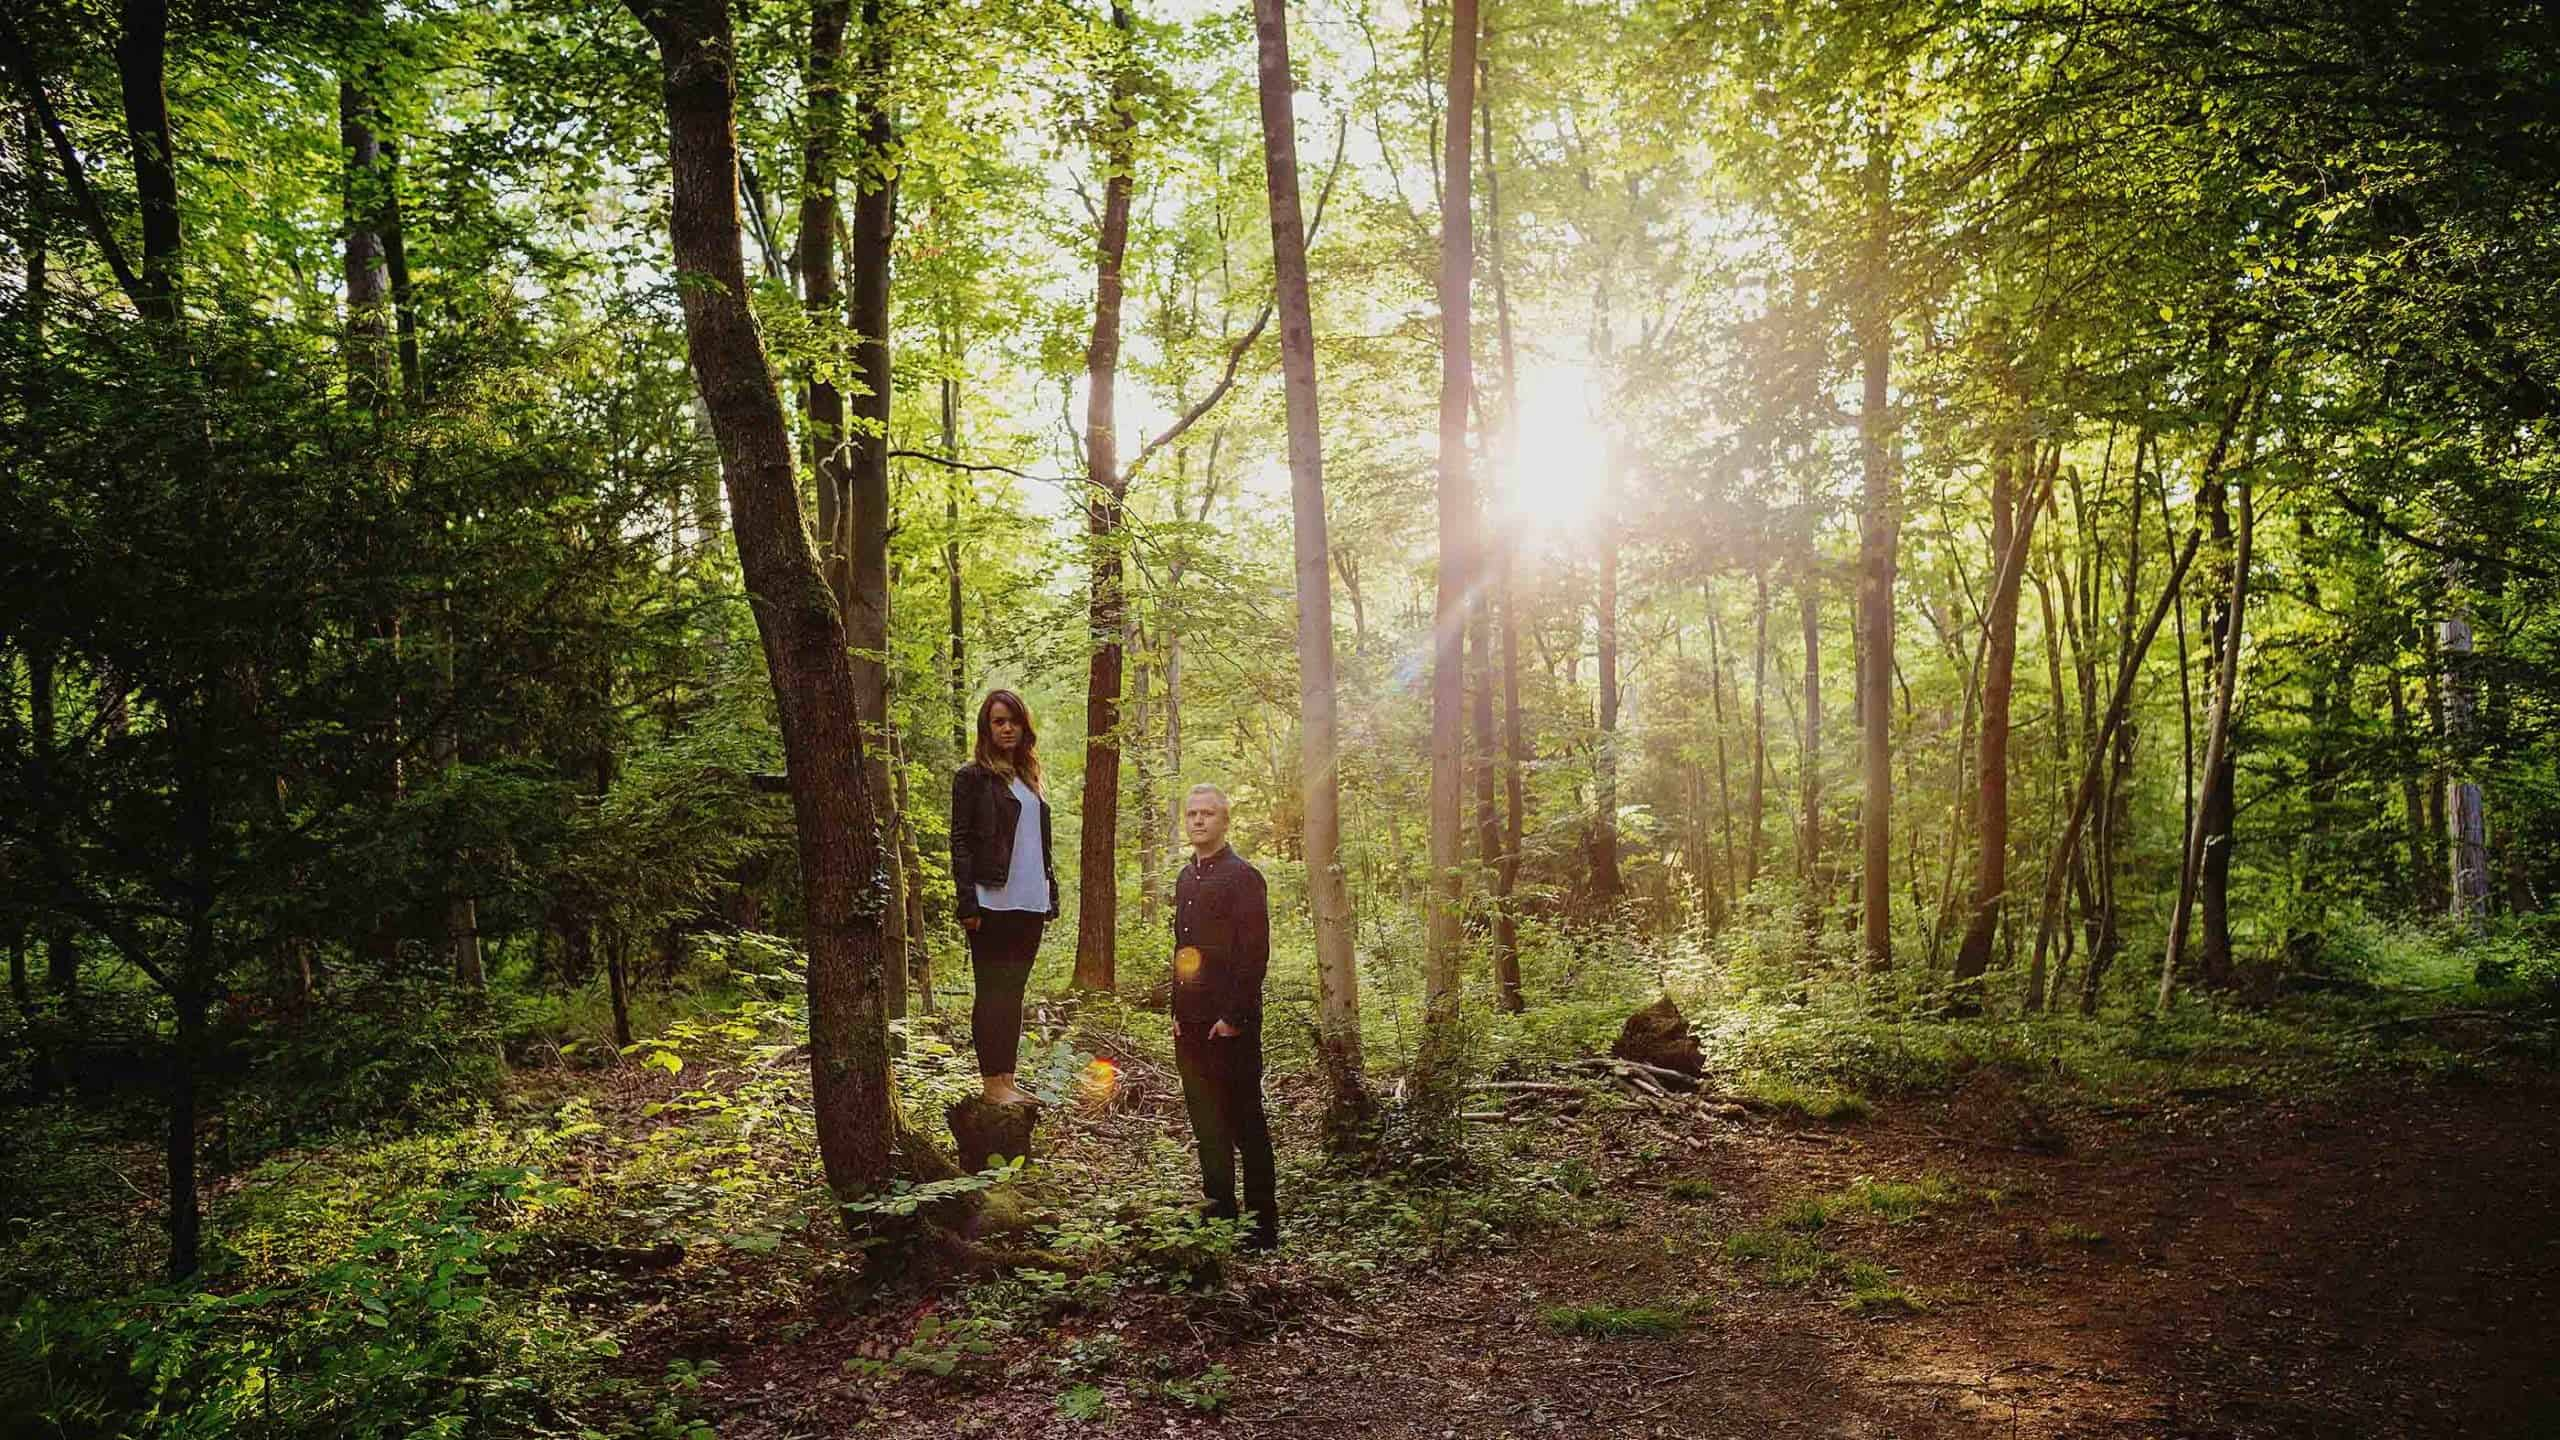 A man and lady stand next to each other and pose for a photograph in woods